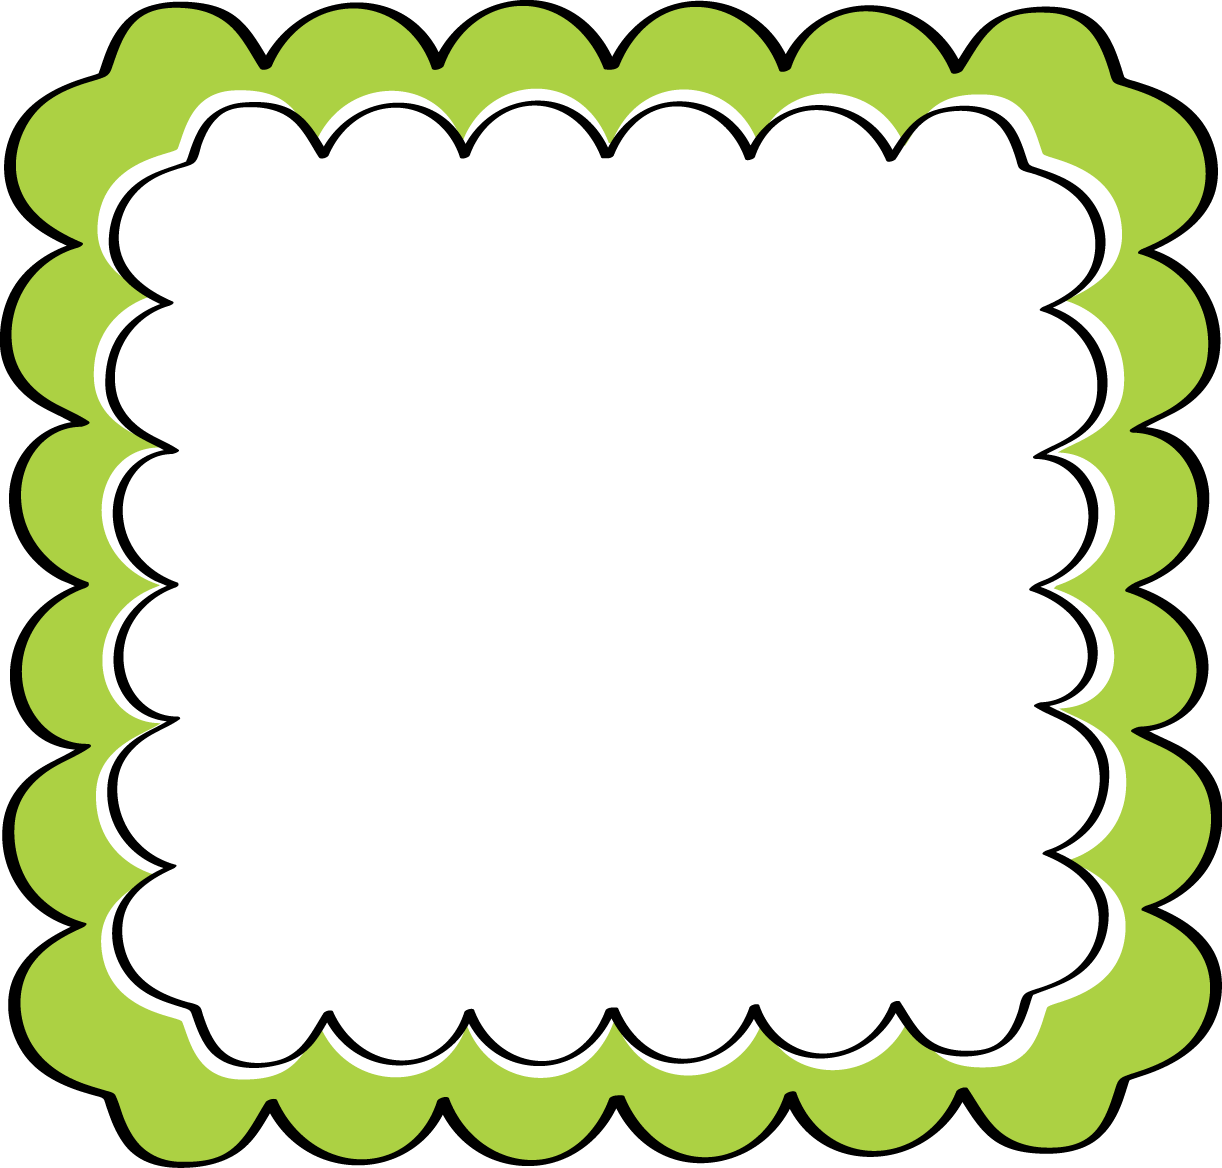 Frames clipart green. School theme border scalloped